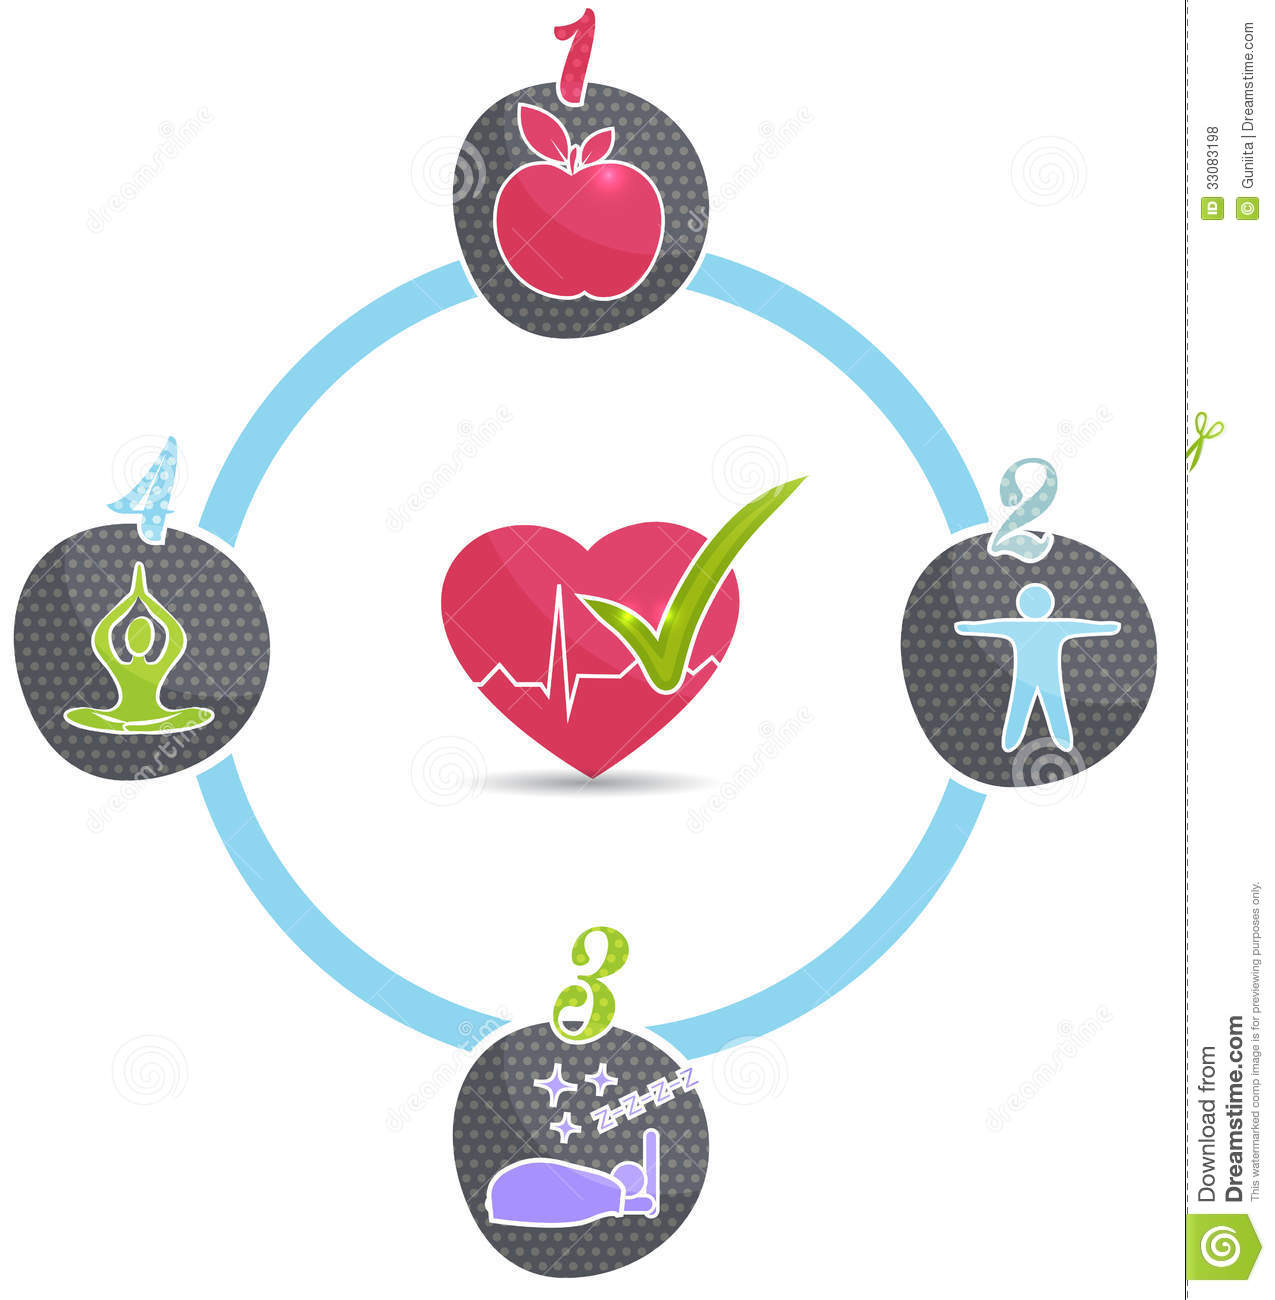 Lifestyle: Healthy Lifestyle Wheel Stock Vector. Image Of Healthy